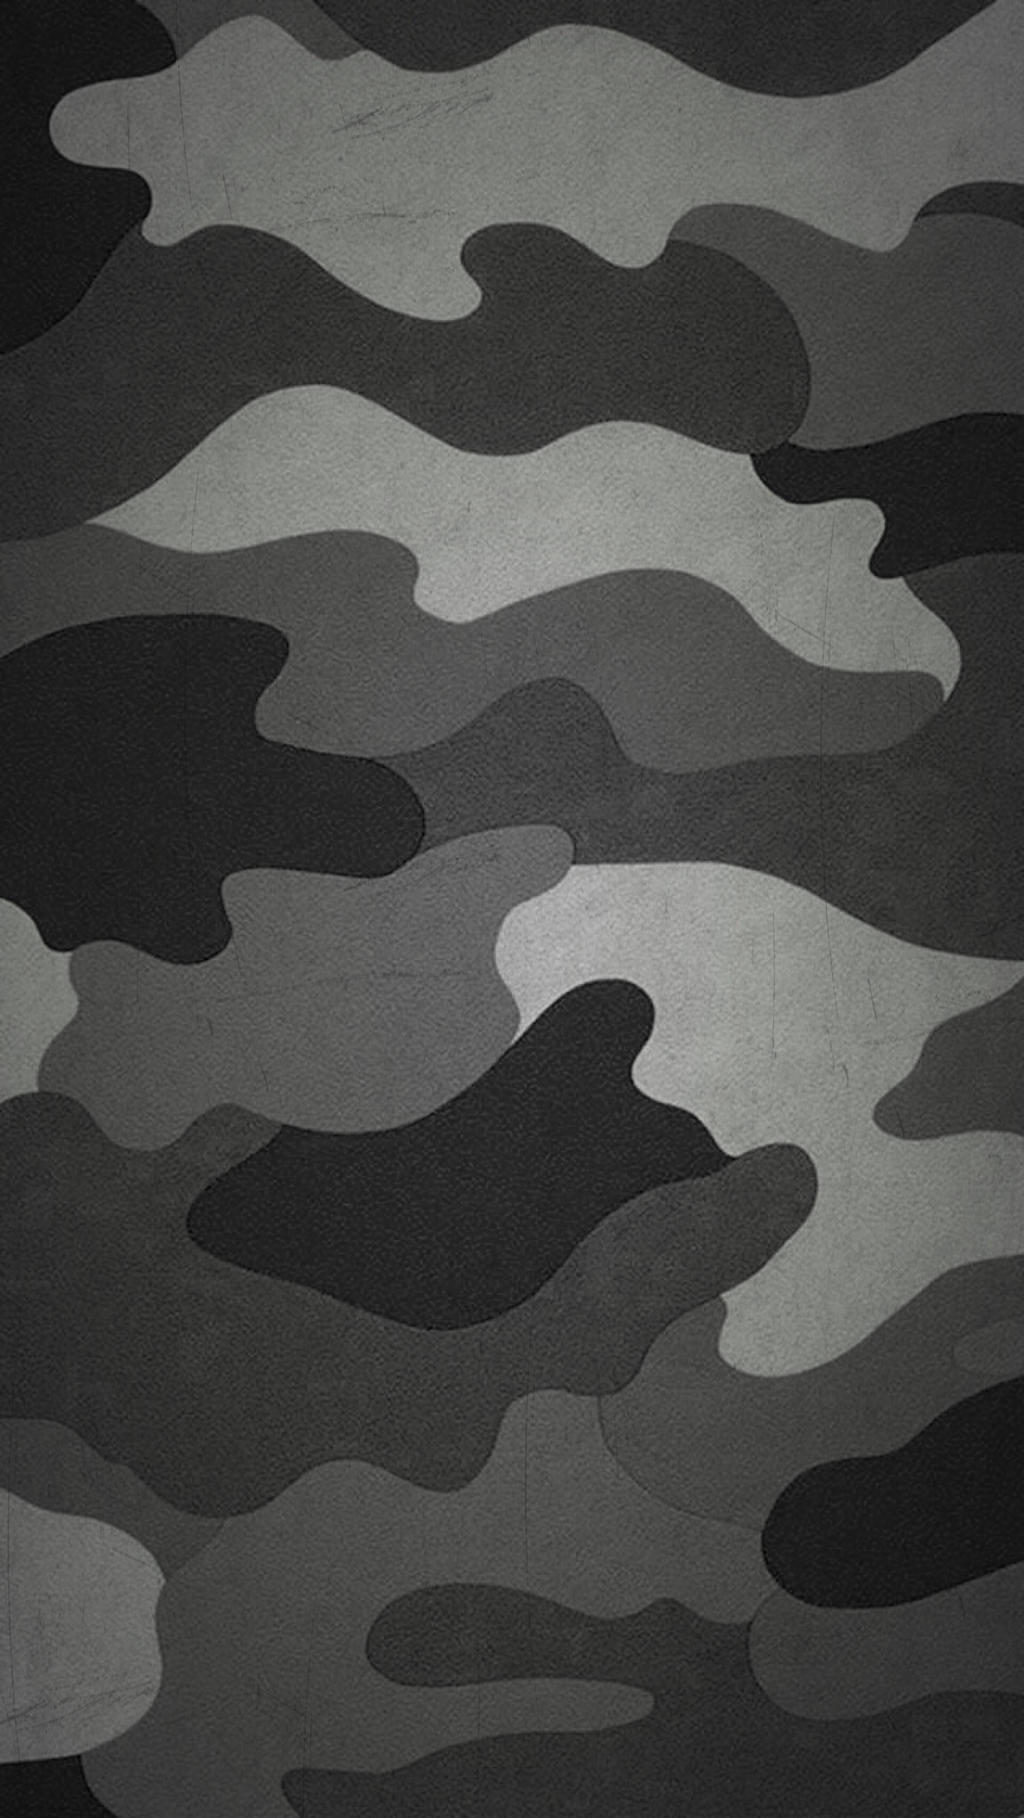 Urban ERDL Camo phone wallpaper/background by XxDannehxX ...